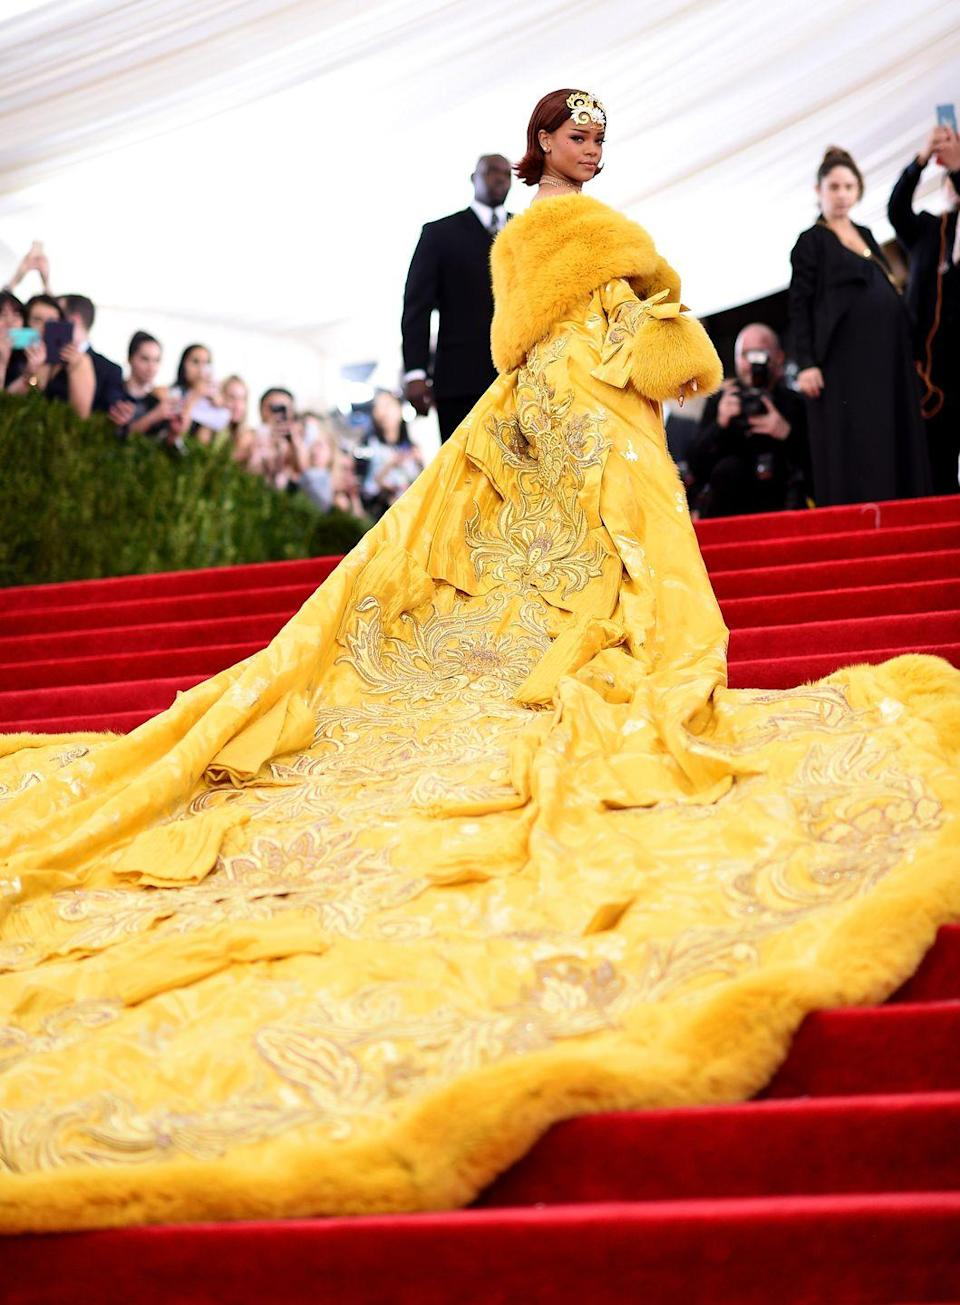 "<p>Never has a Met Gala look gone so instantly viral as the <a href=""https://www.harpersbazaar.com/uk/celebrities/red-carpet/g27330102/best-ever-met-gala-fashion-history/?slide=2"" rel=""nofollow noopener"" target=""_blank"" data-ylk=""slk:yellow cape gown Rihanna"" class=""link rapid-noclick-resp"">yellow cape gown Rihanna</a> wore in 2015 - popularly dubbed 'the omelette dress' - which sparked countless memes. The ornate look, by Chinese couturier Guo Pei, took 20 months to create and weighed approximately 55 pounds. </p>"